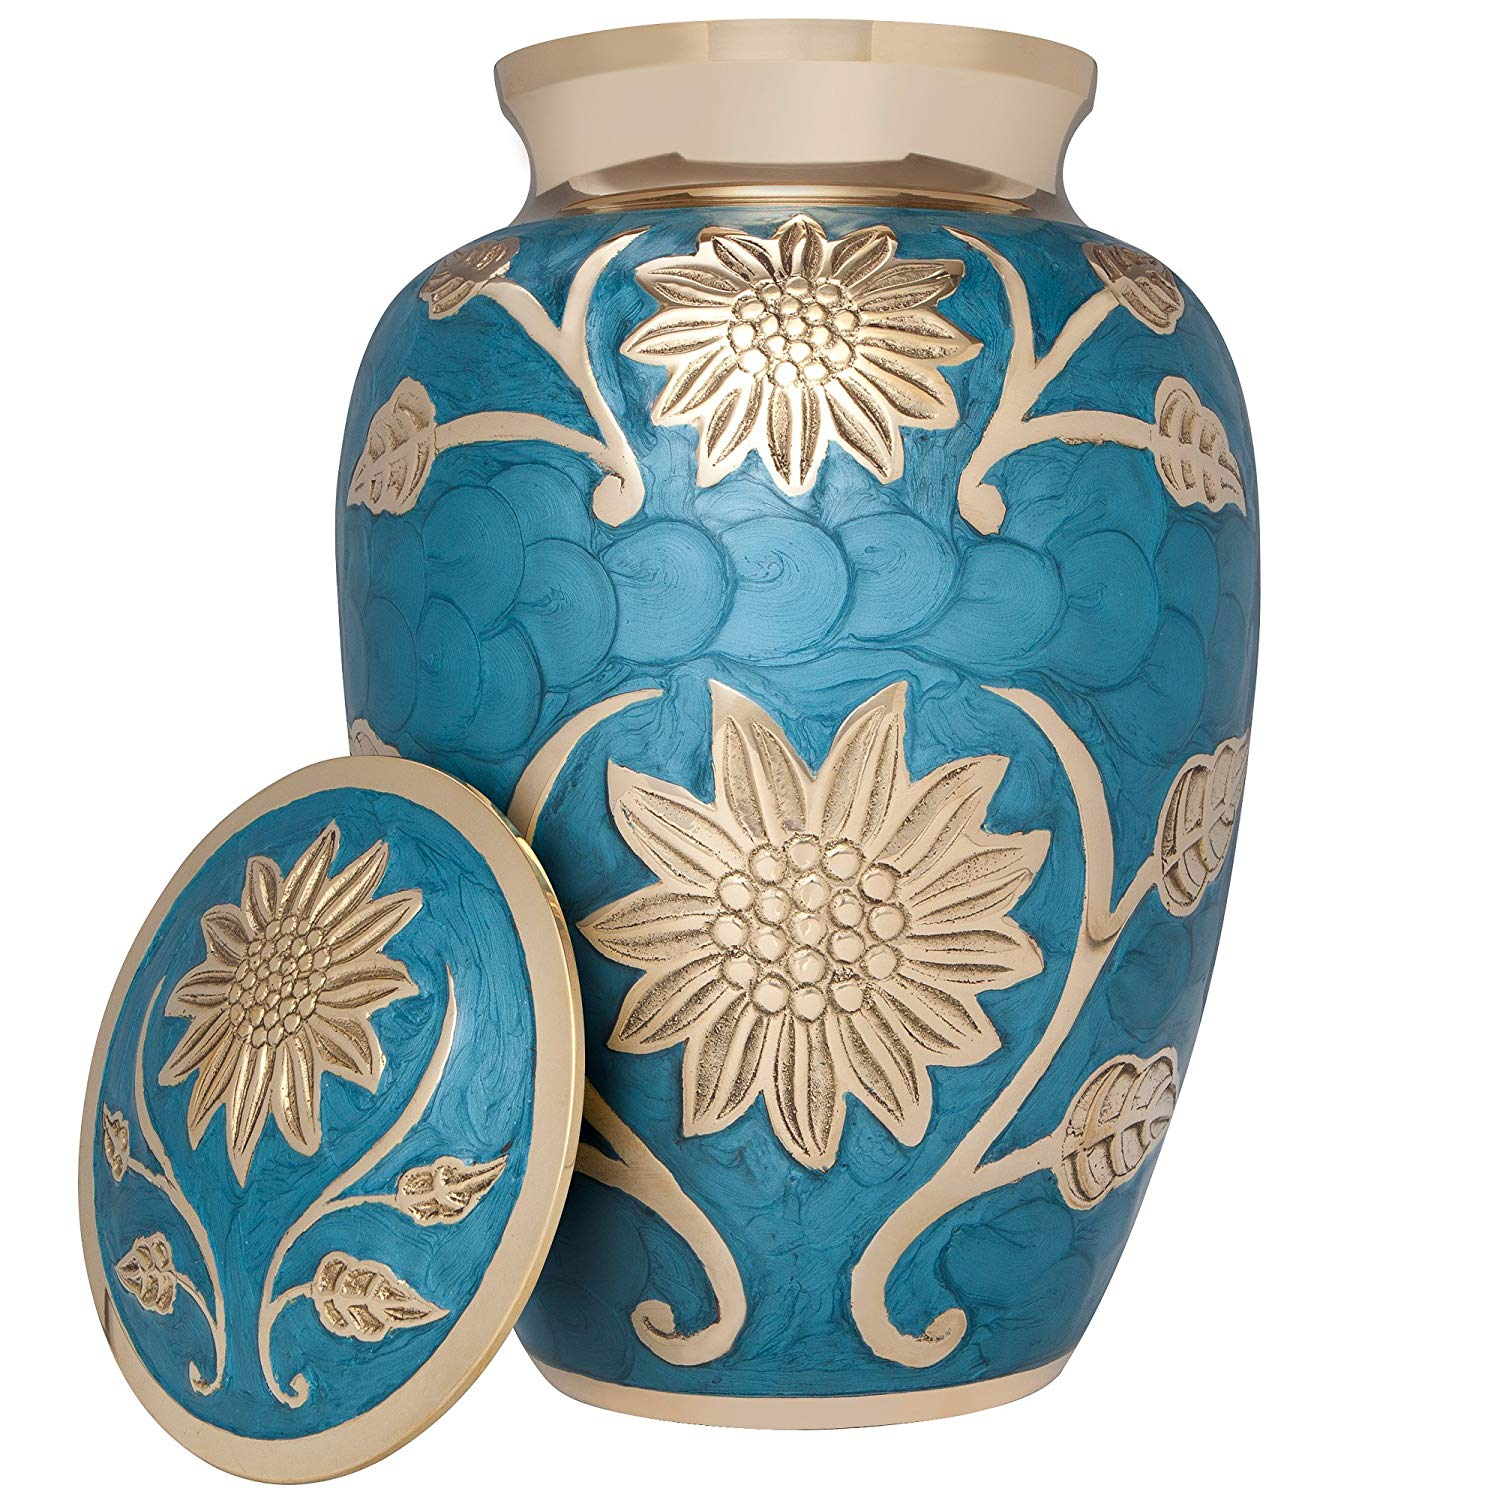 Metallic blue cremation urn